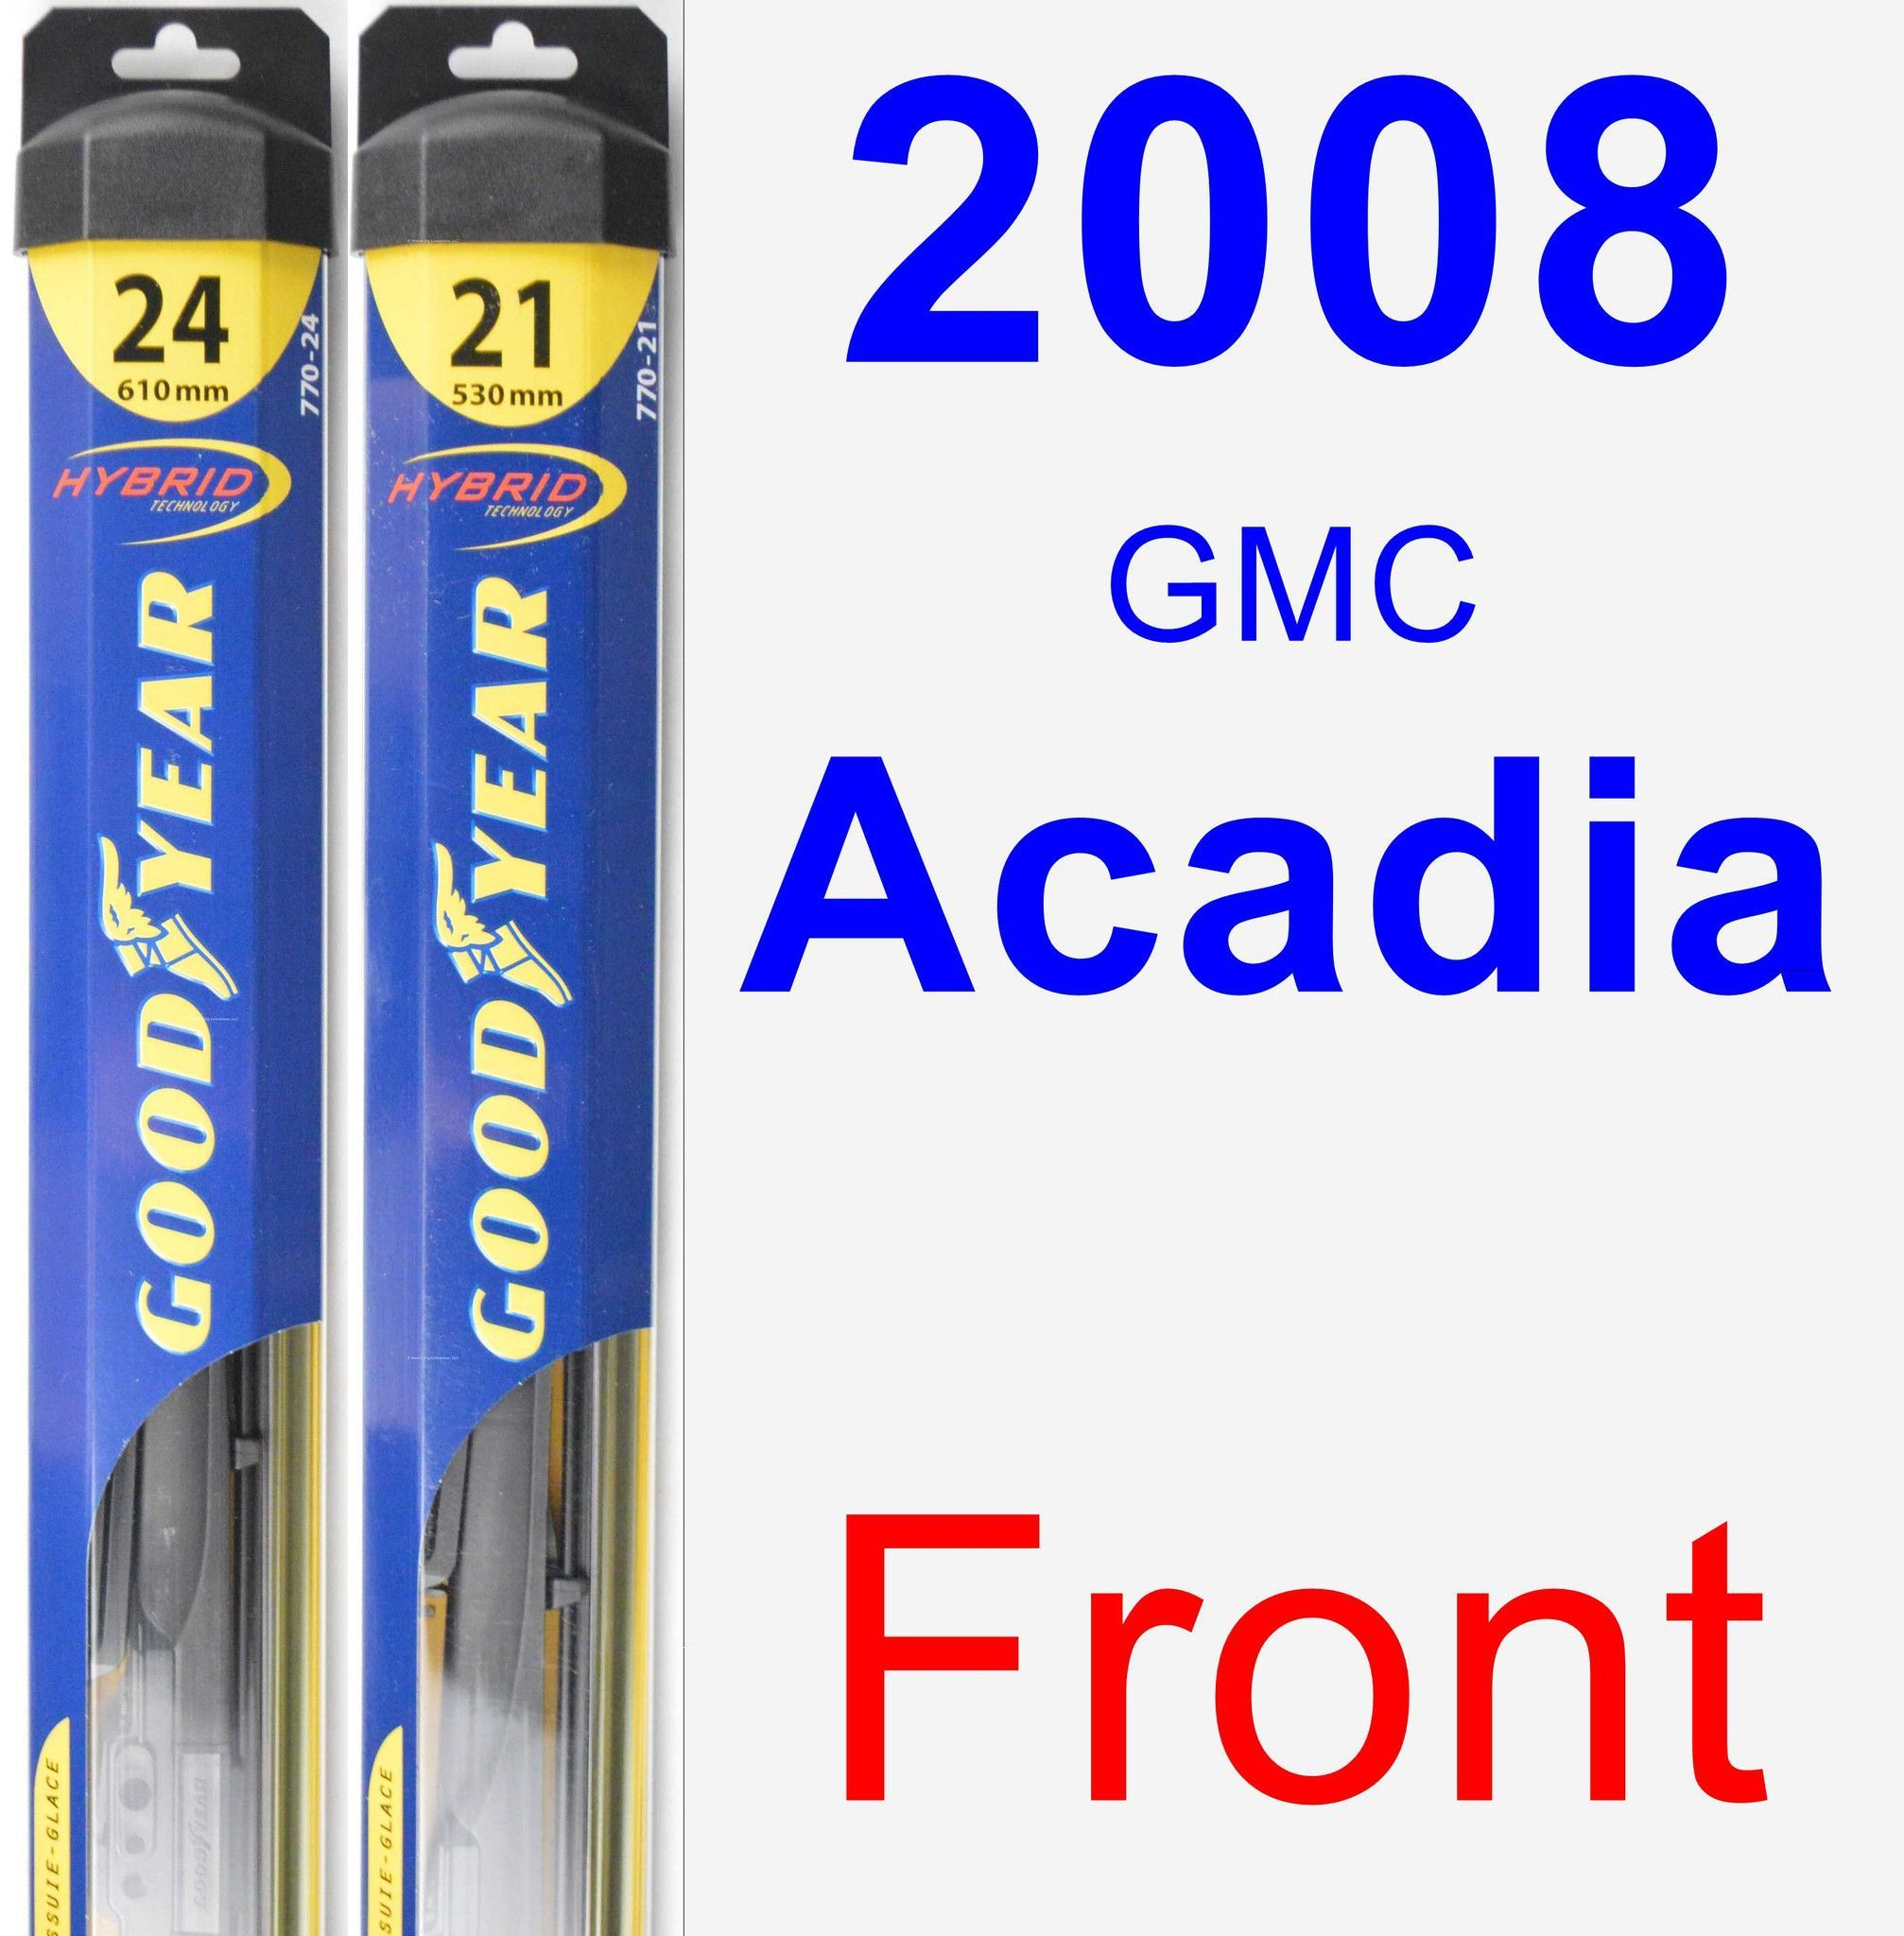 Front Wiper Blade Pack For 2008 Gmc Acadia Hybrid Wiper Blades